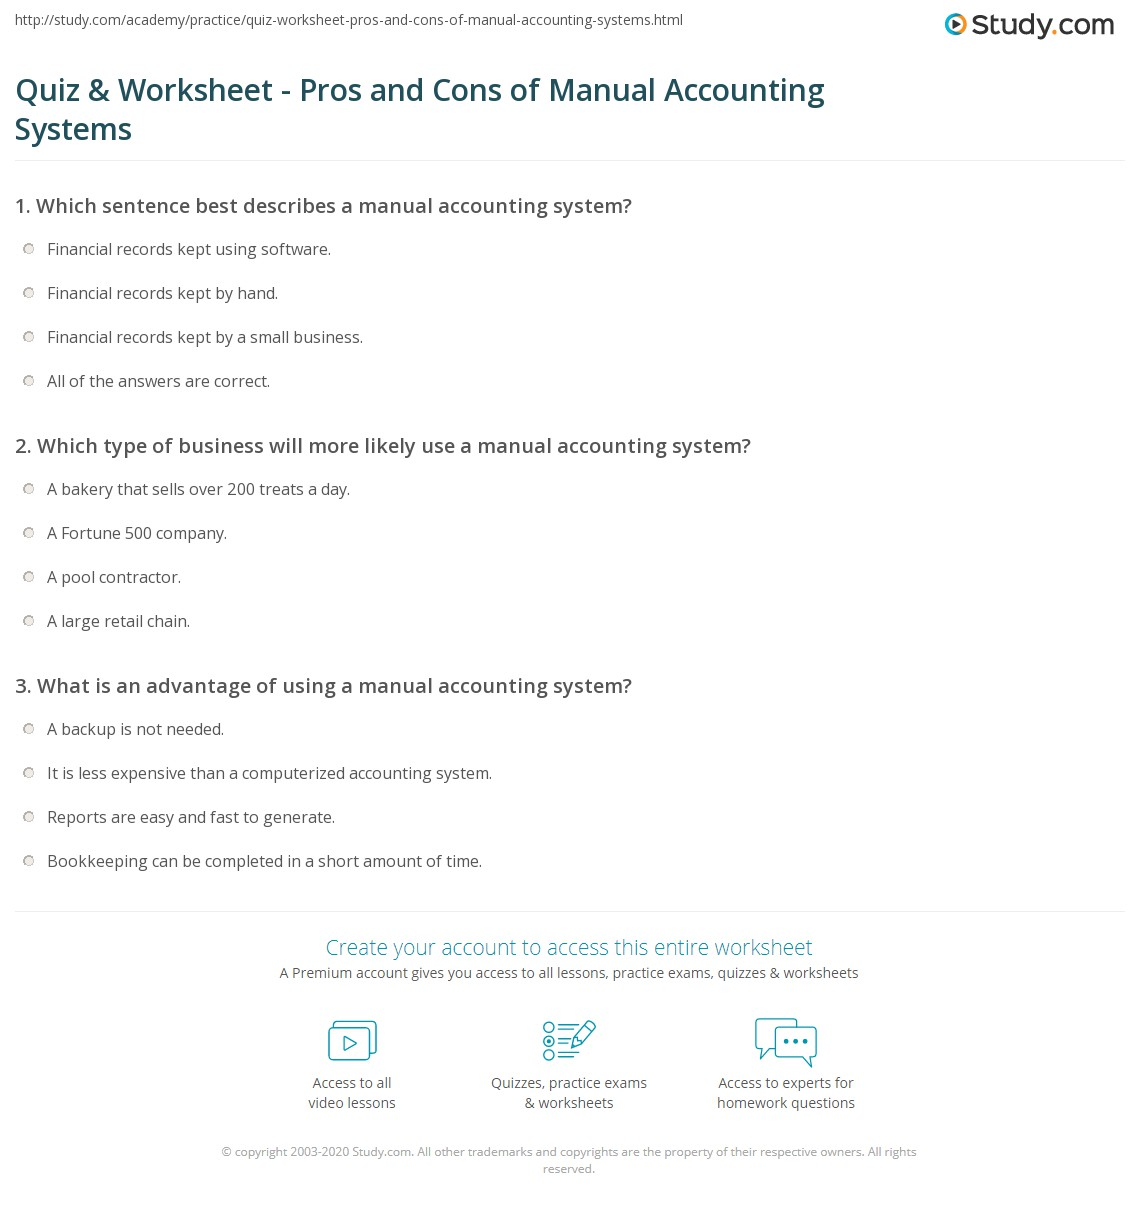 advantages of tally over manual accounting